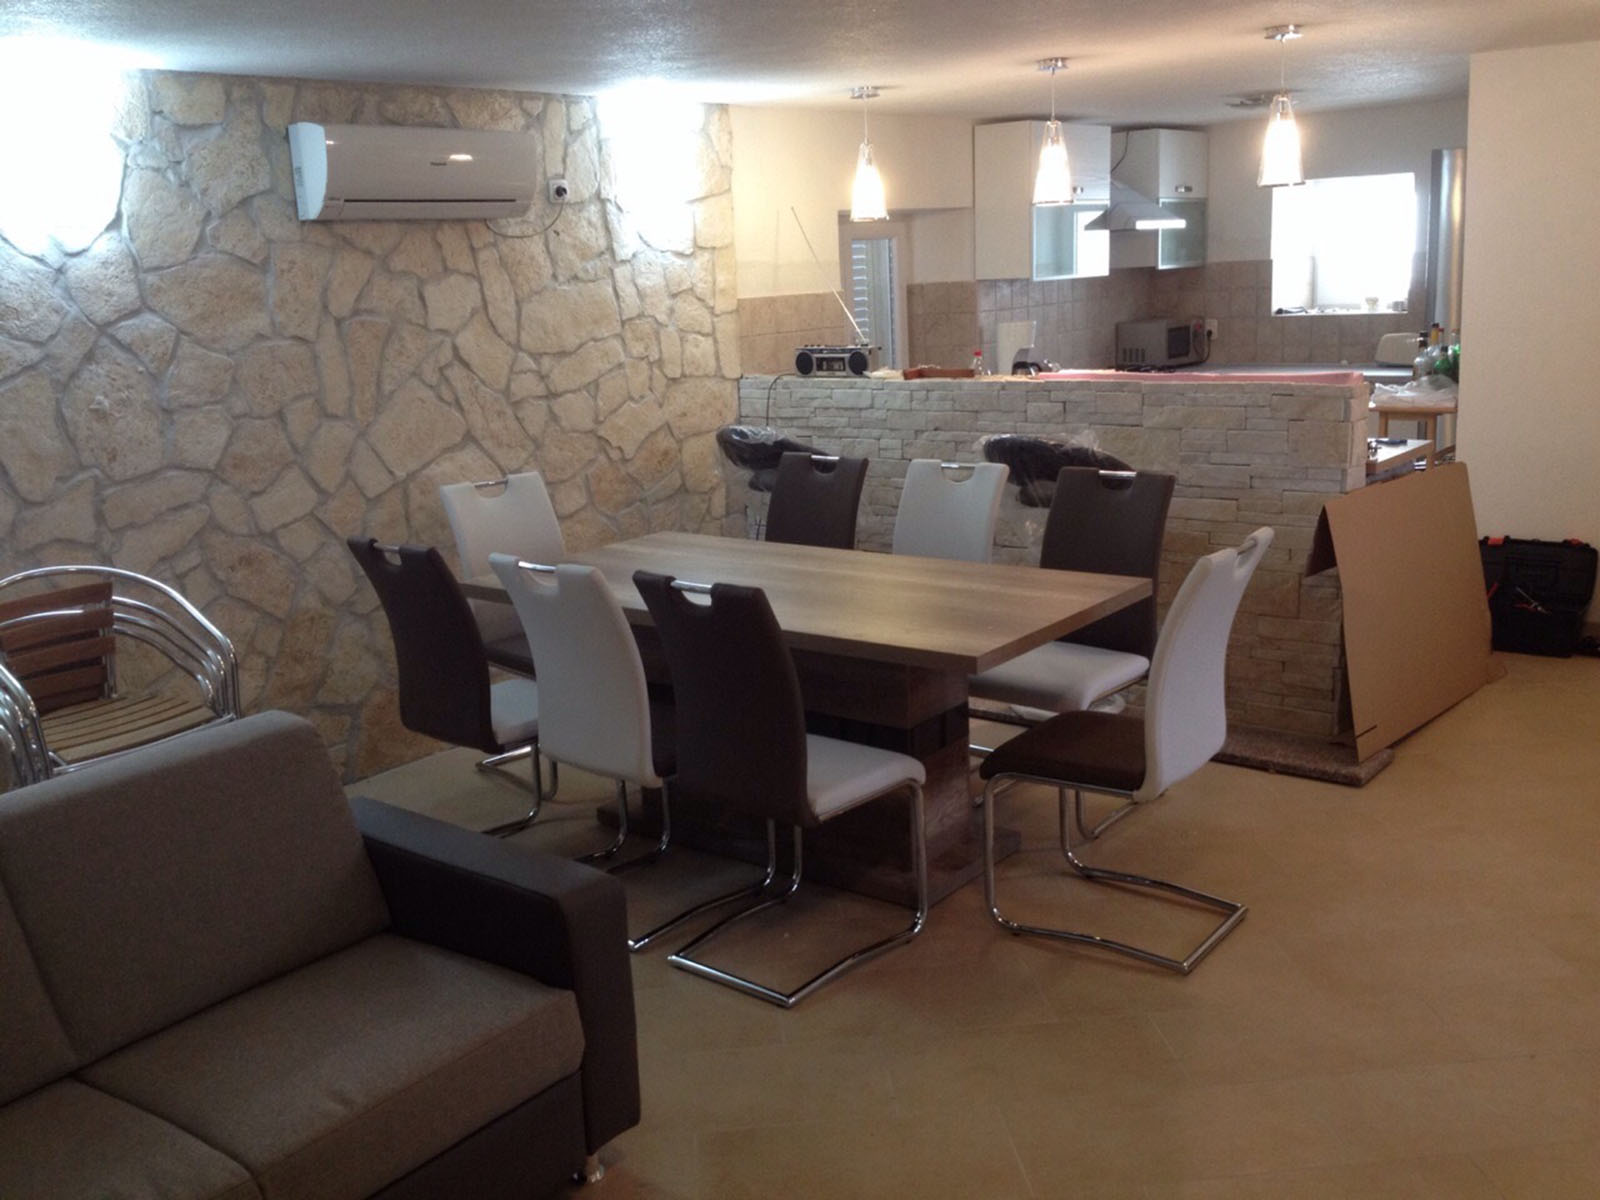 apartments4U-croatia-dugi-otok-indoor-6